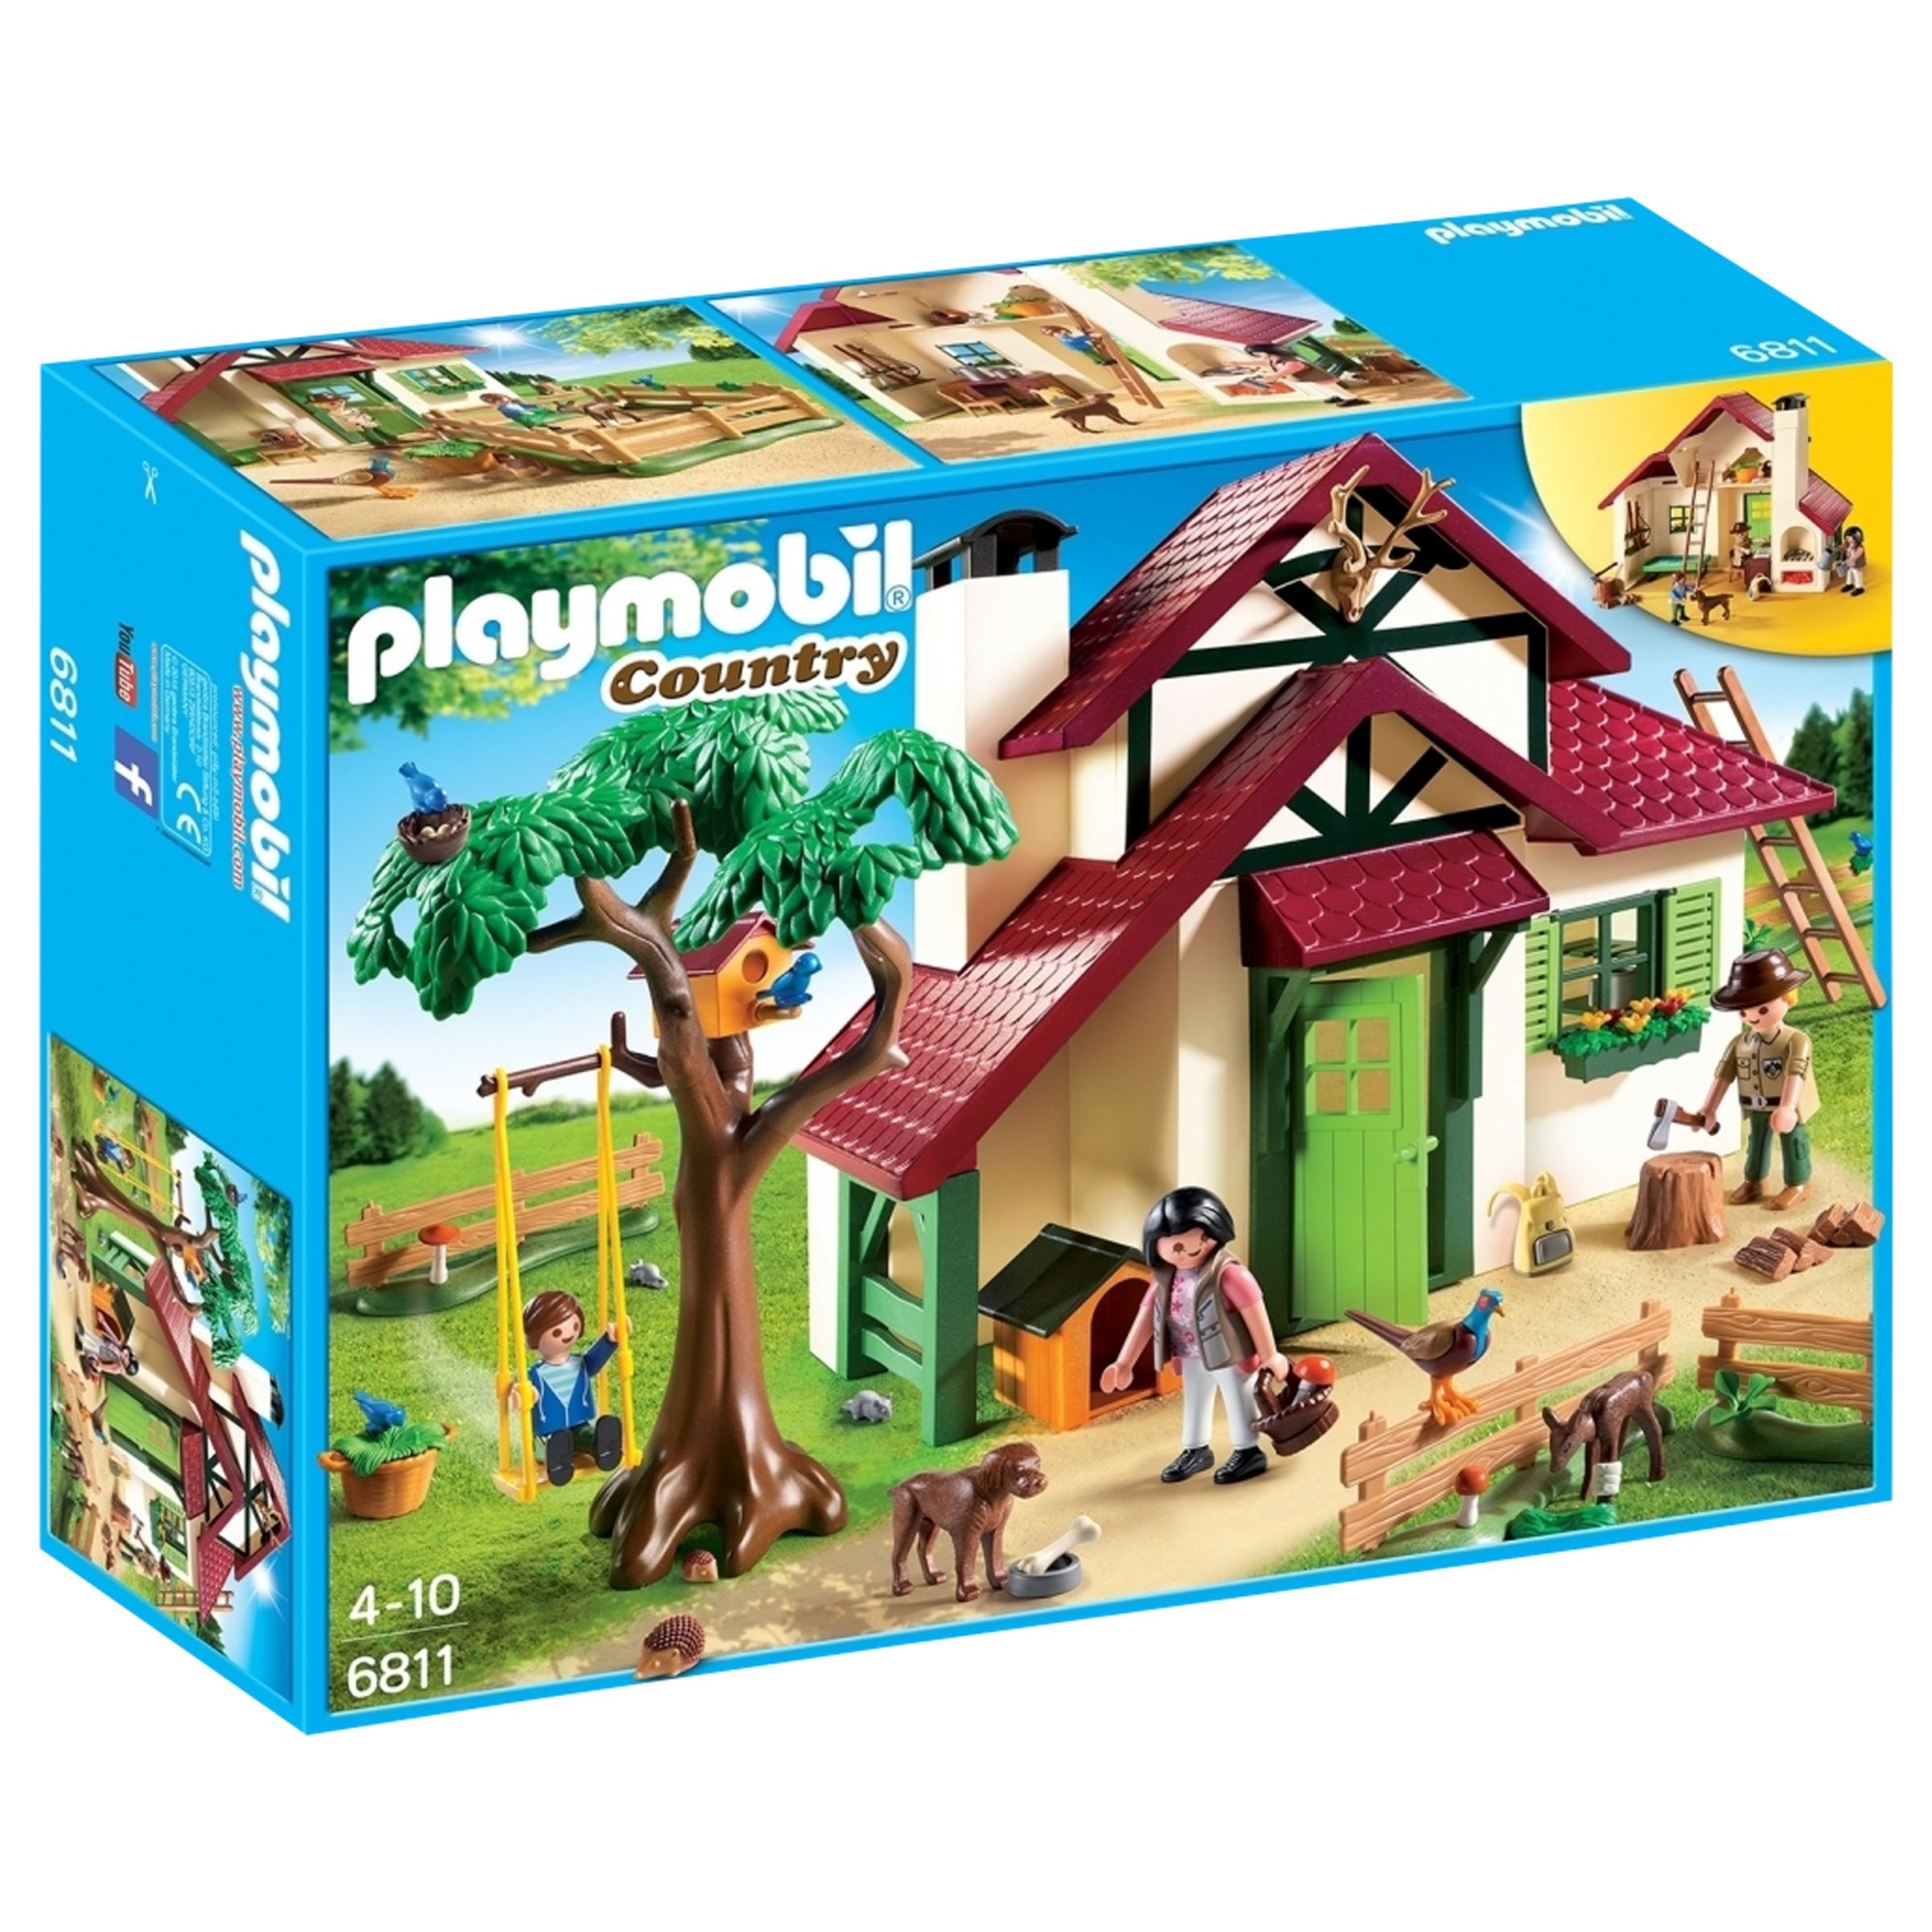 PLAYMOBIL Playmobil Country Forest Rangers House